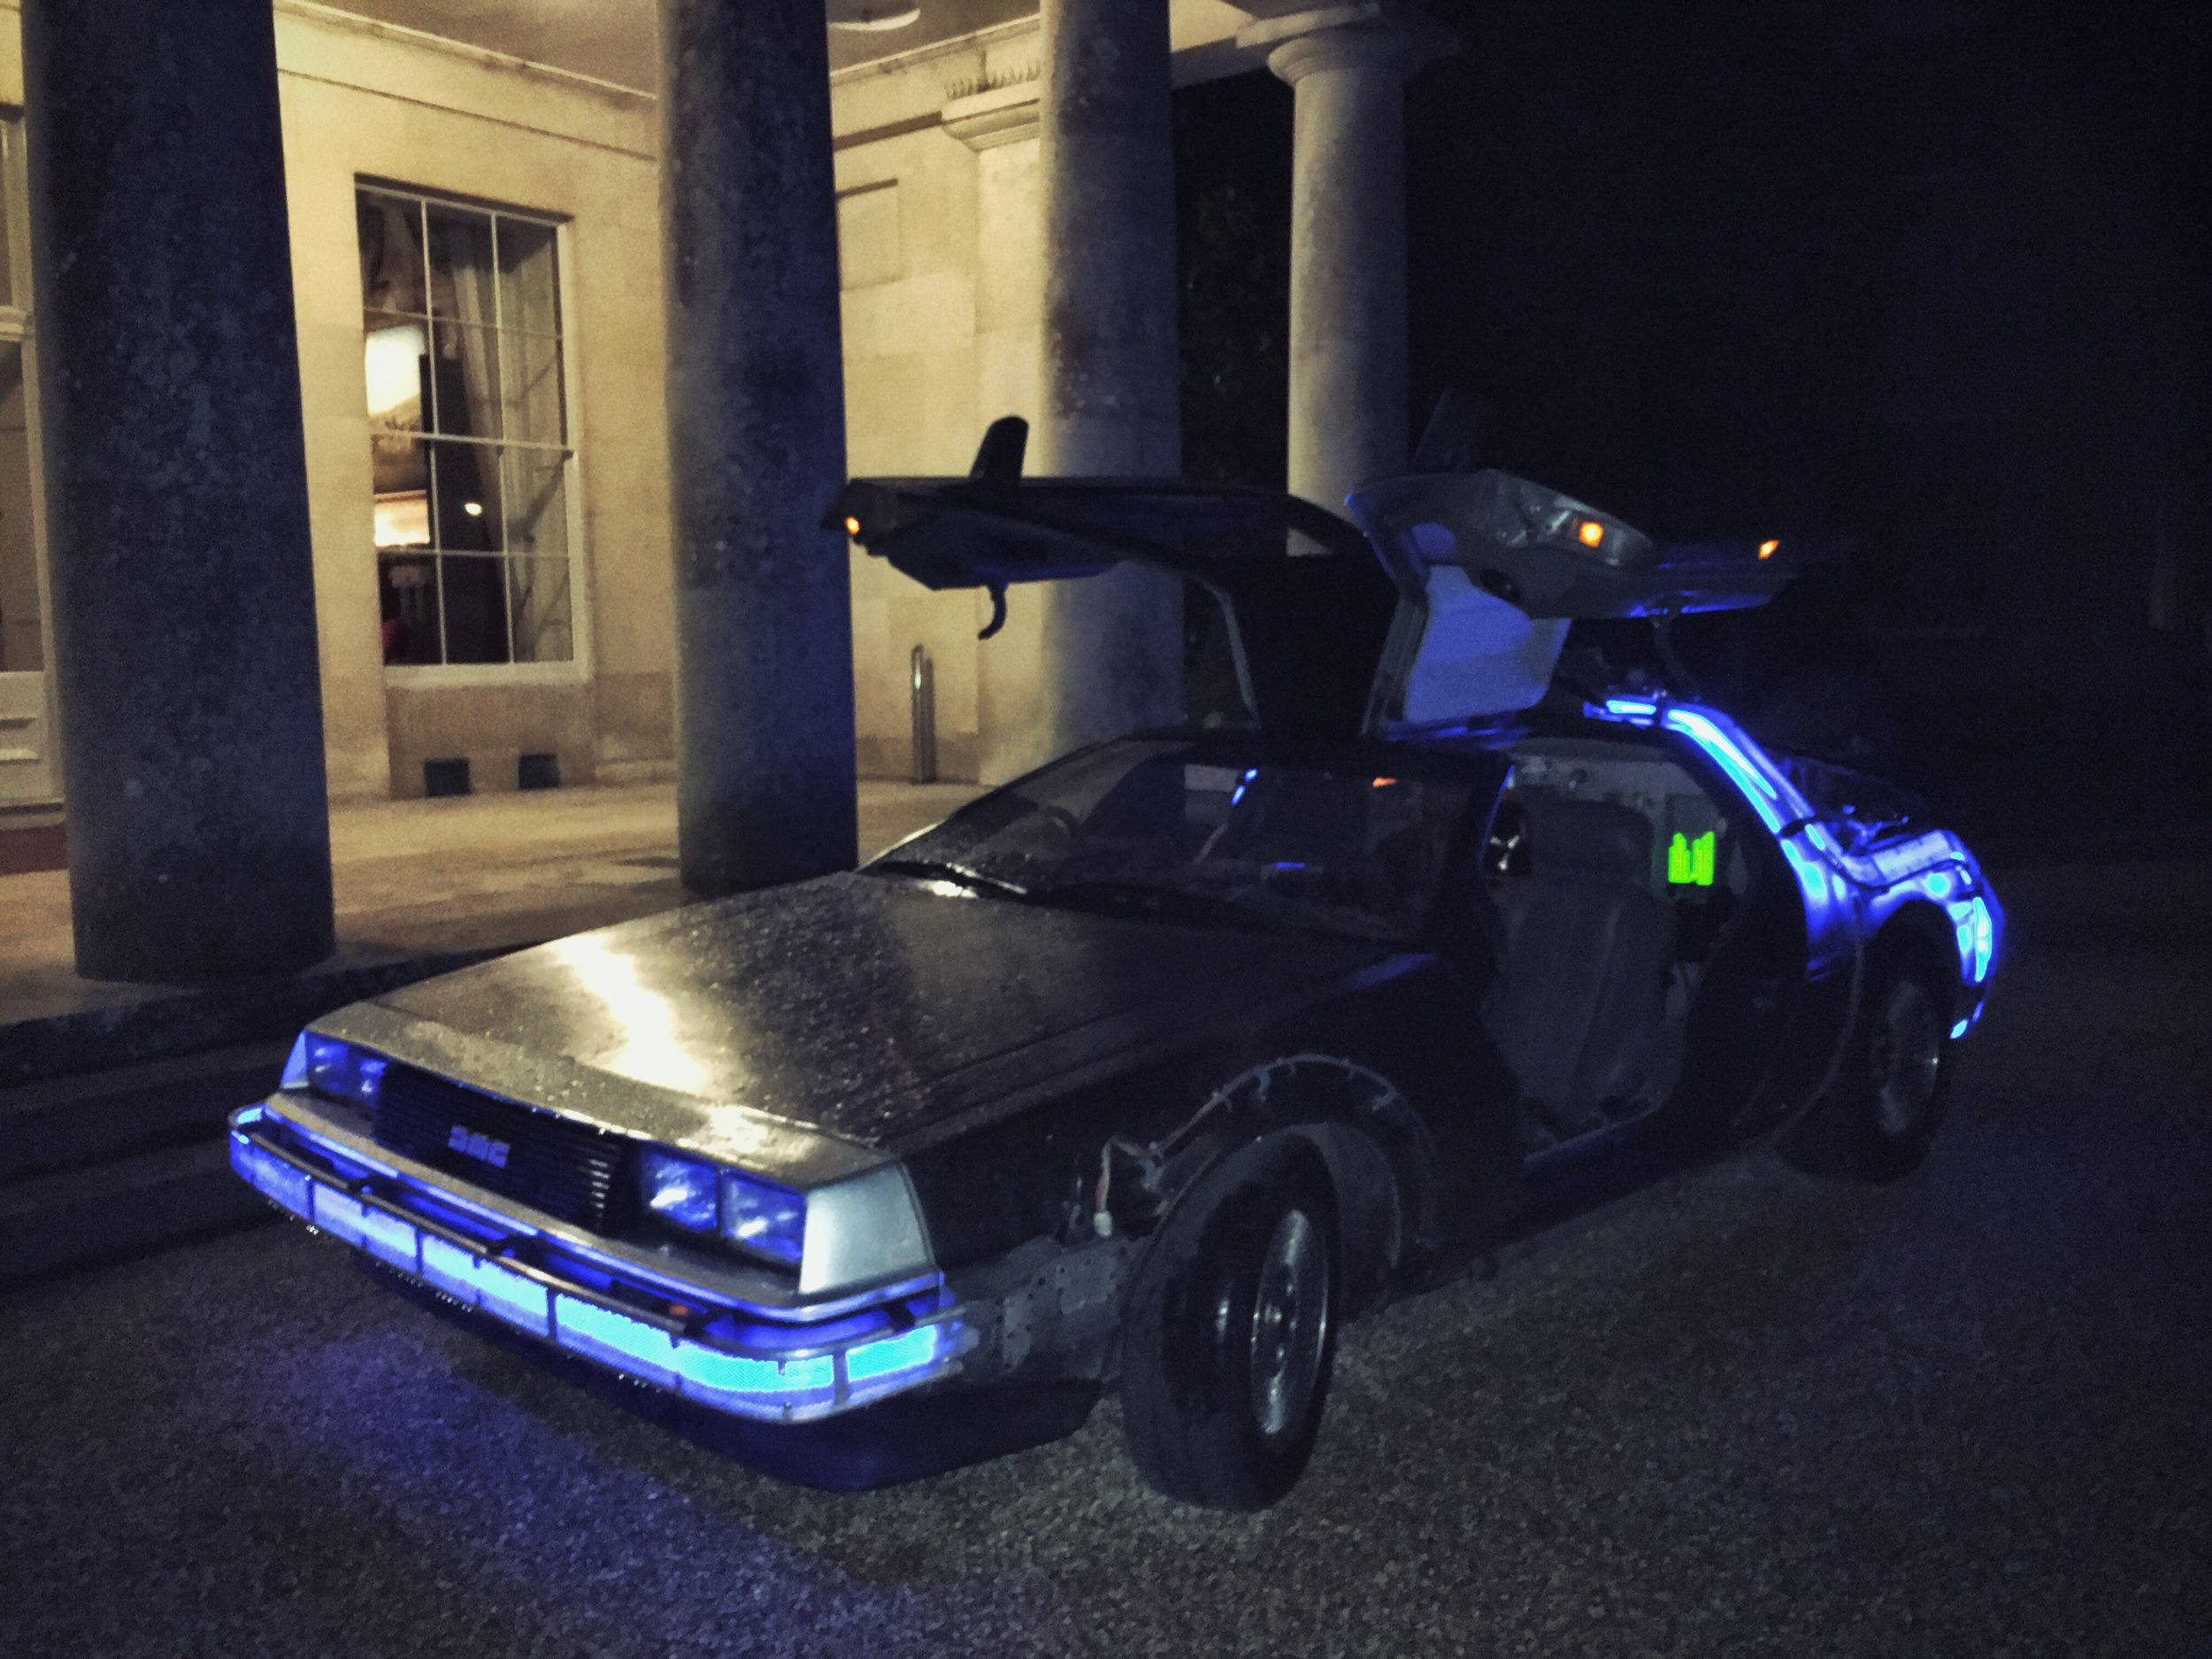 The Bluejays -  Back To The Future  themed events - The Delorean